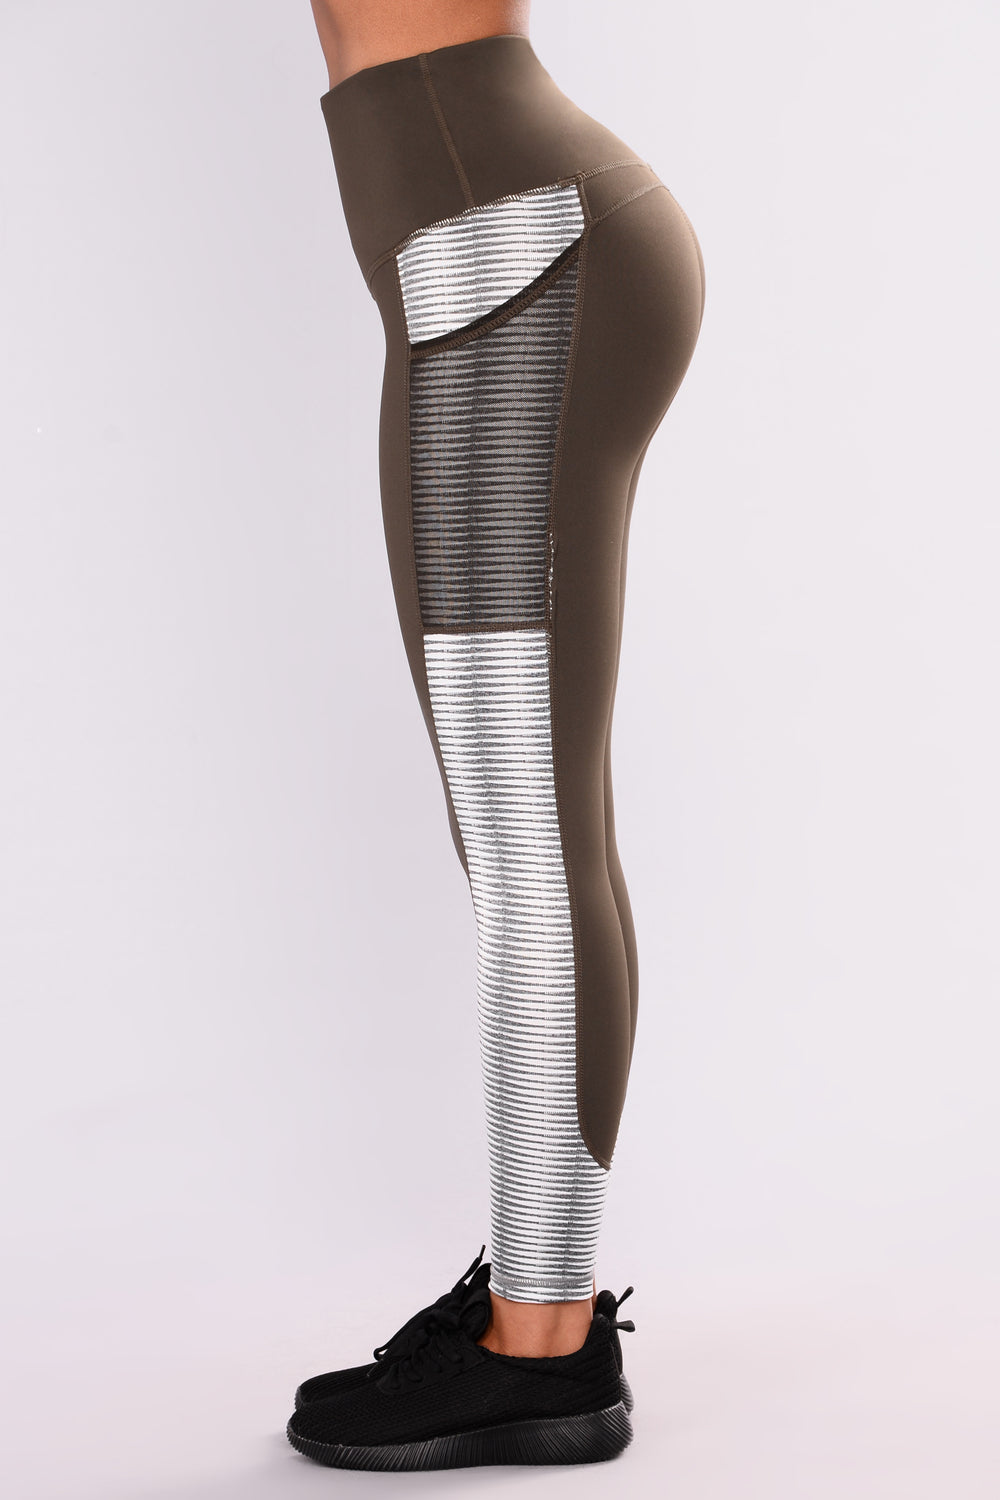 Sasha Mesh Active Leggings - Olive/Multi